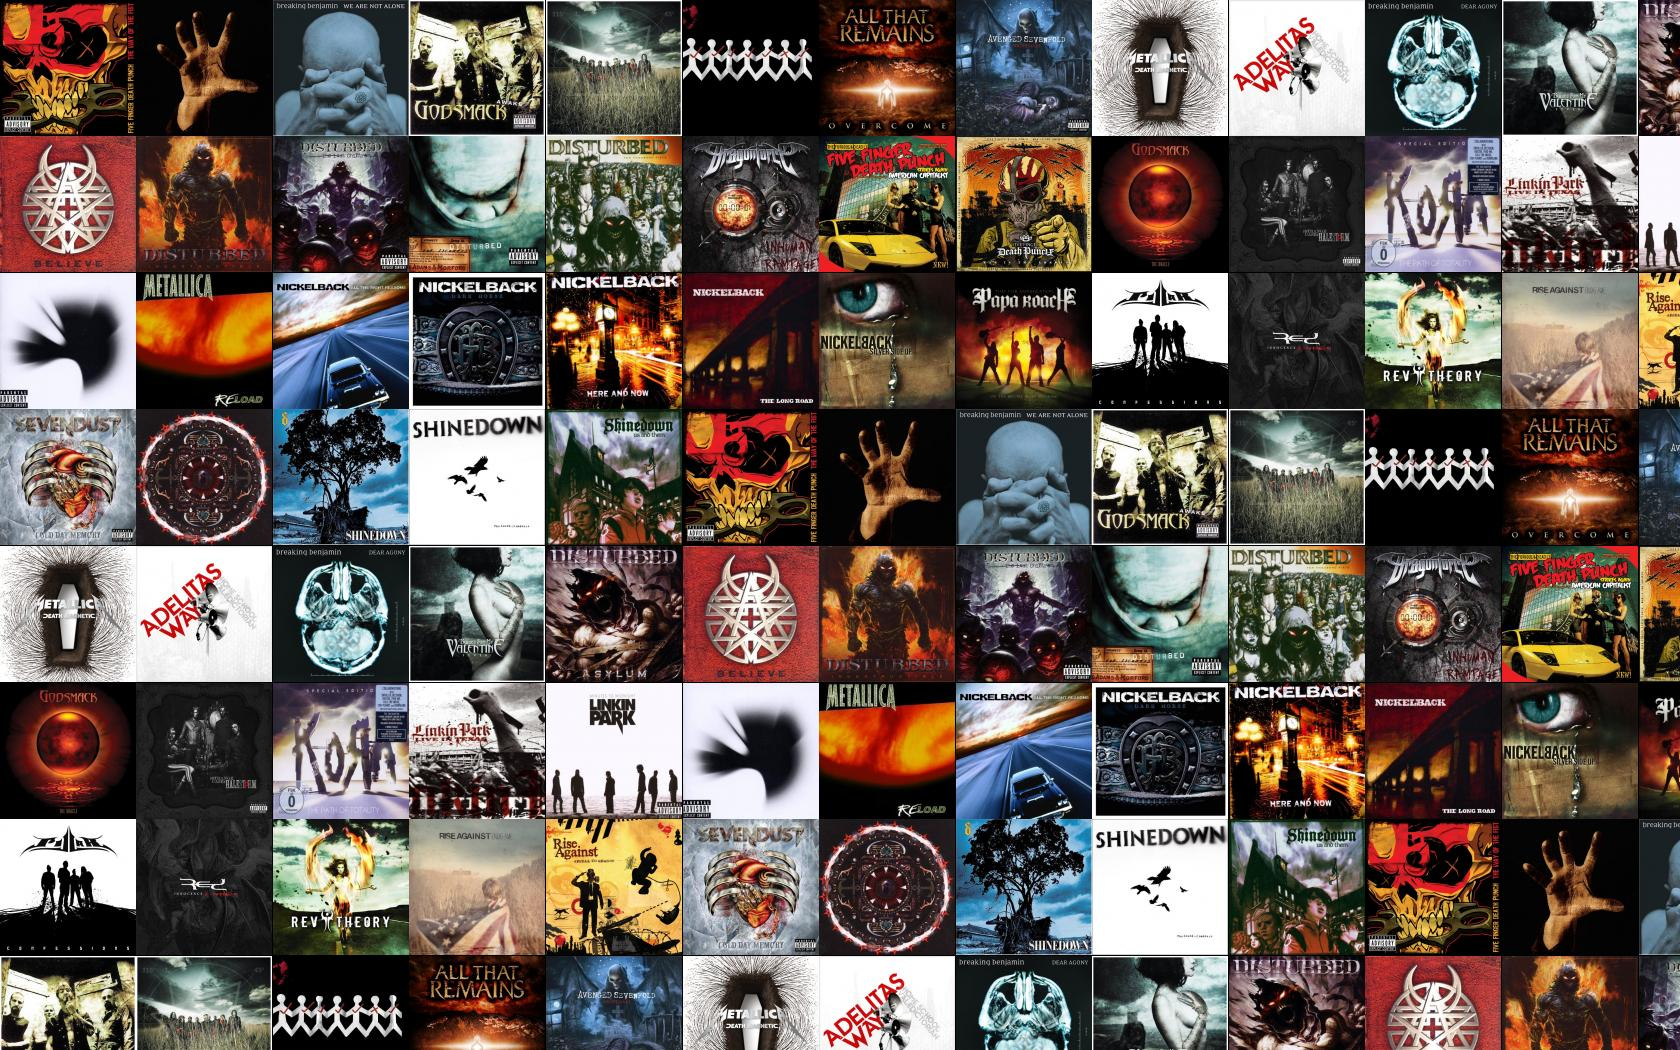 Five Finger Death Punch Way Fist System Down Wallpaper ...